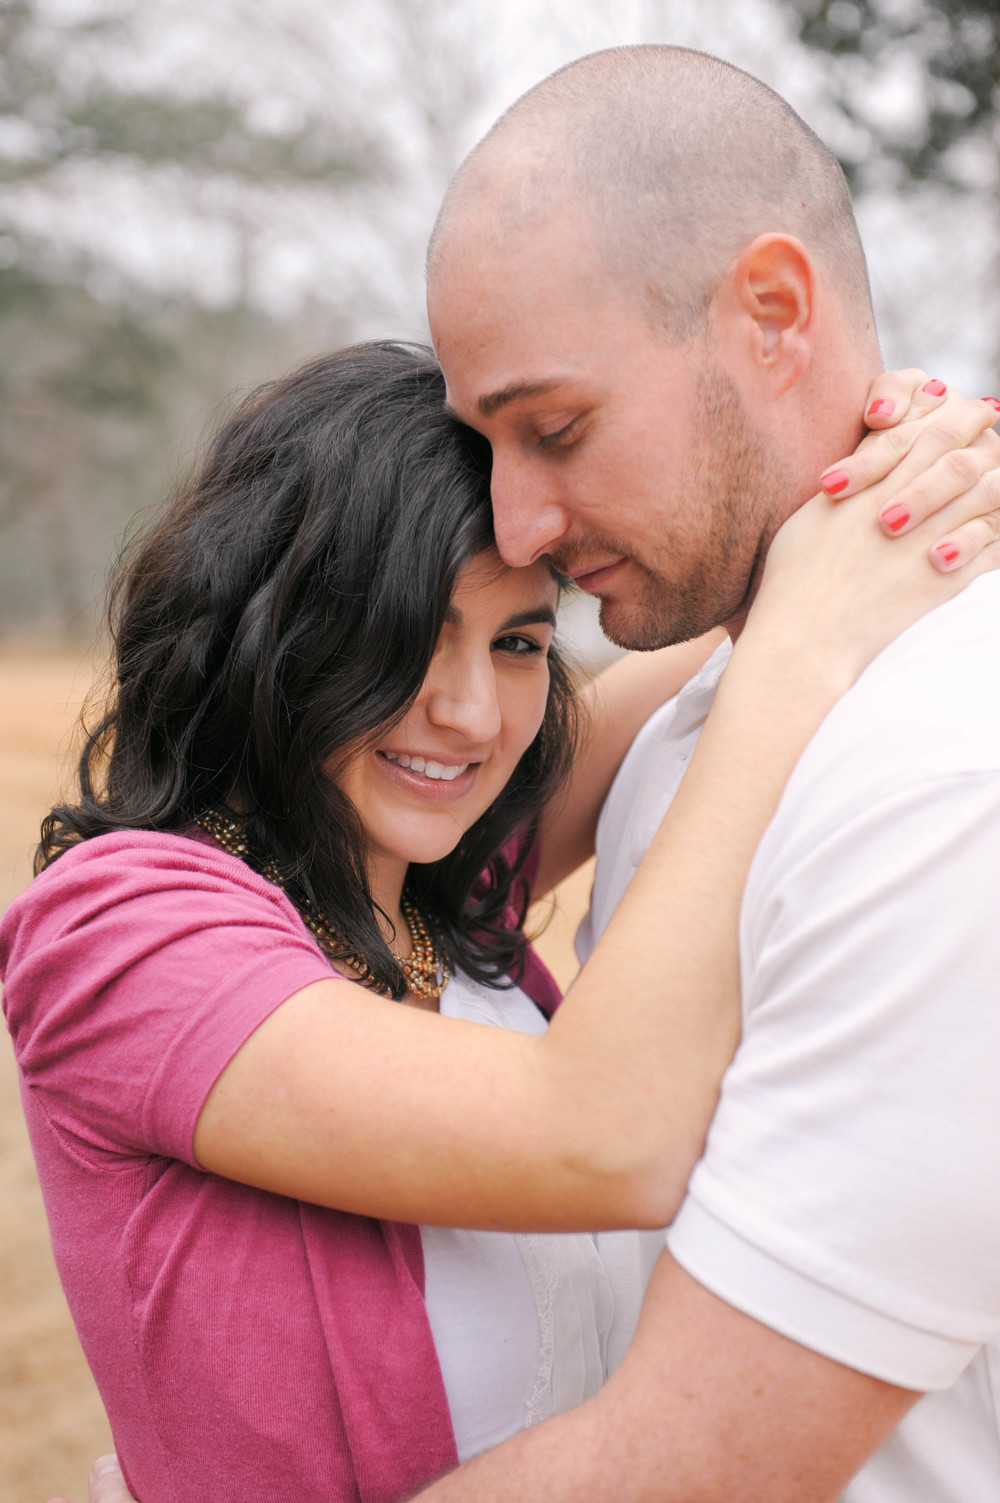 Ross_Goodman_Photography_Engagement_Dublin_GA_Chapell_Mill (52).jpg